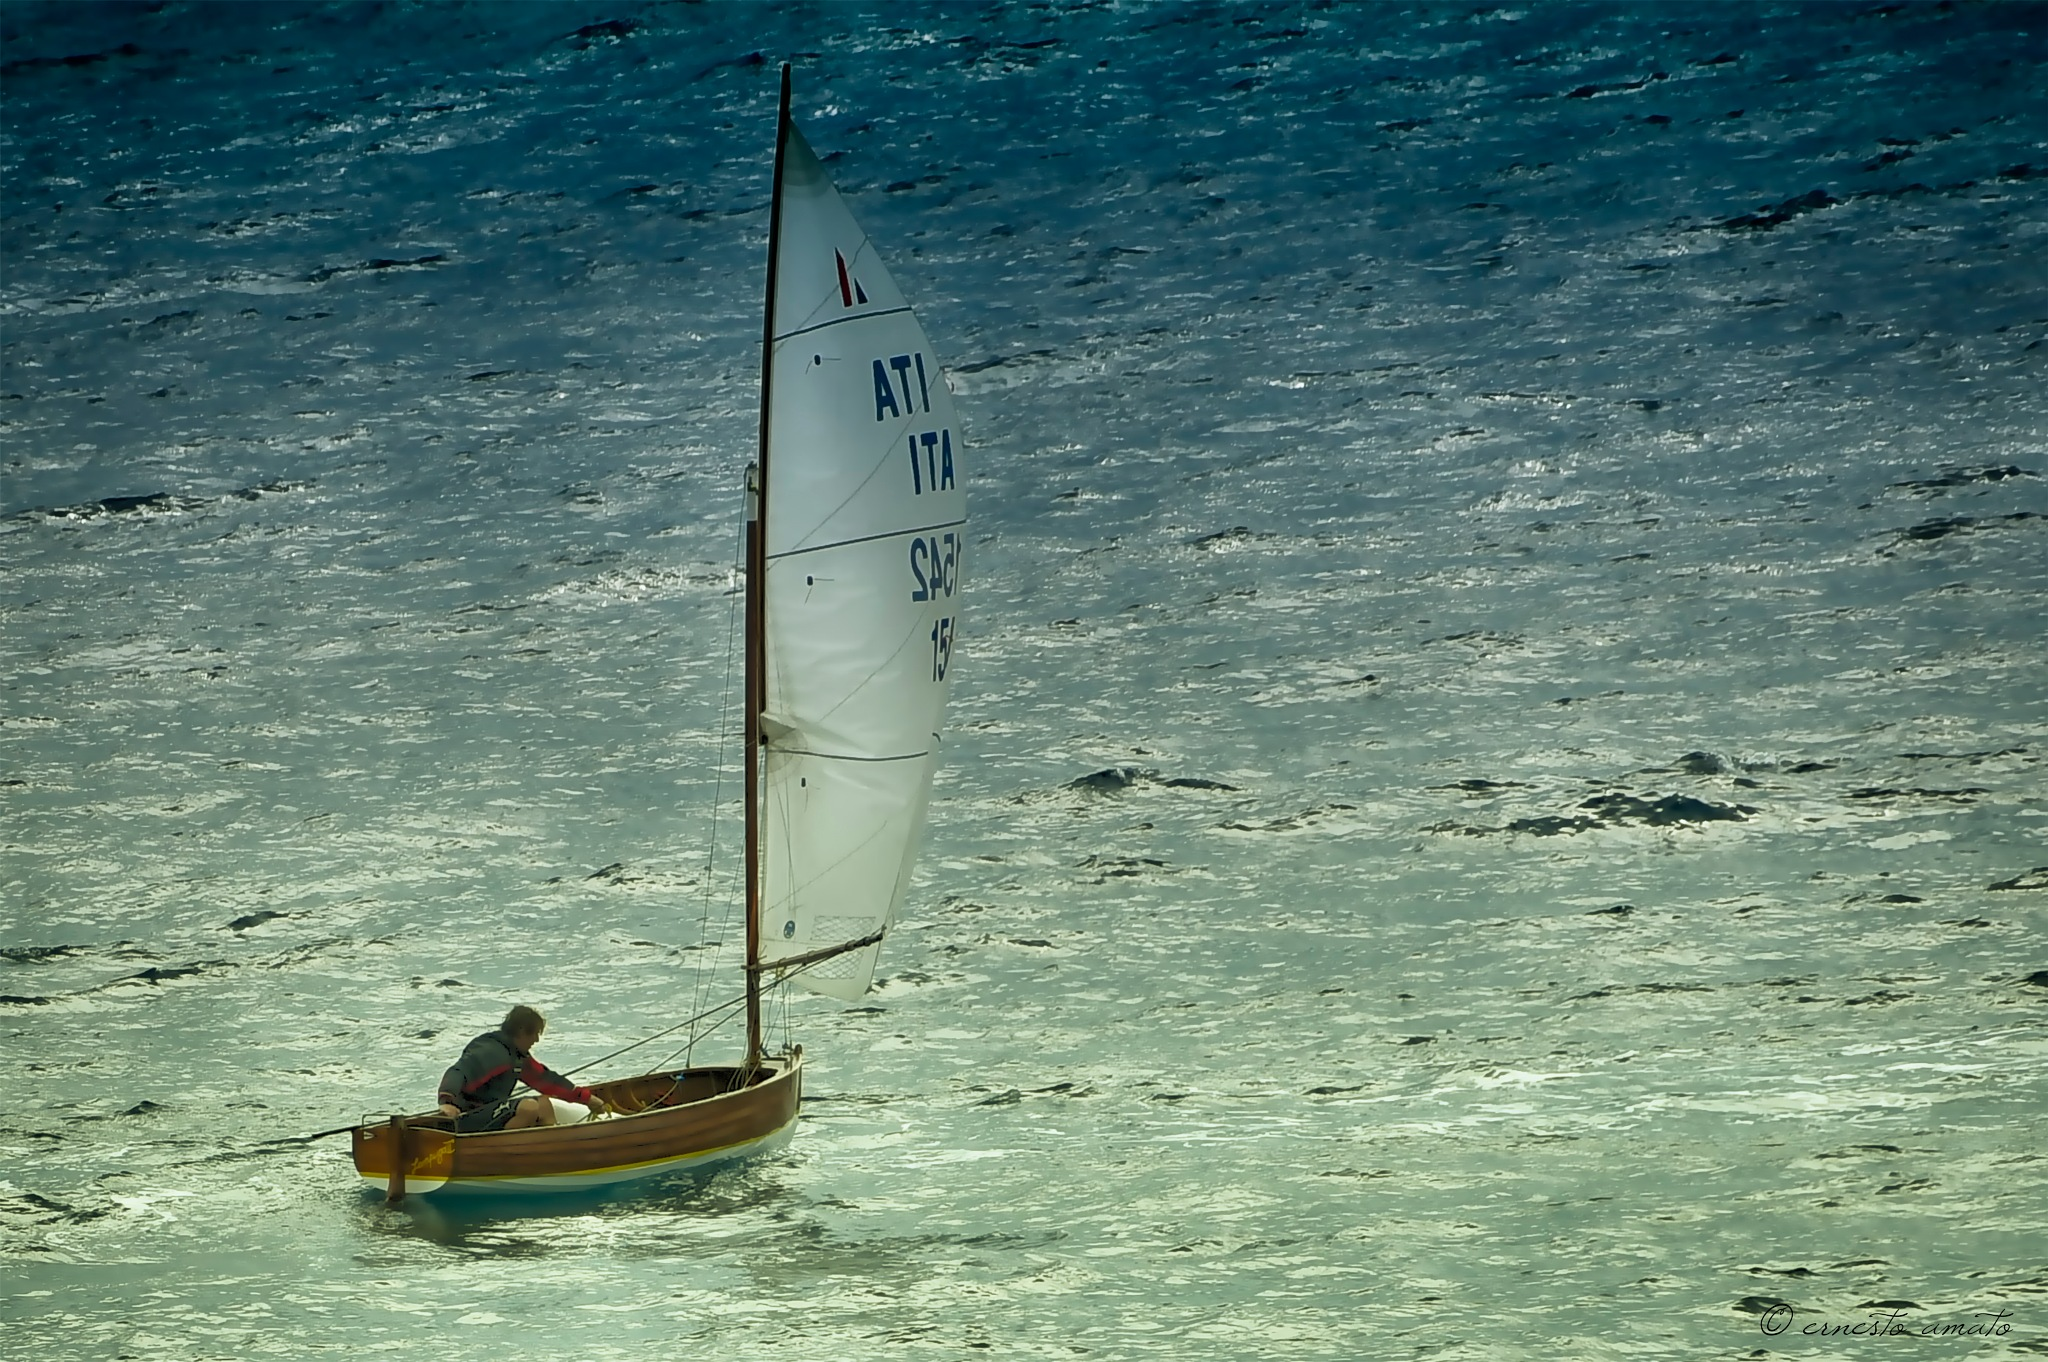 sail boat in the wind by sunrisesunset